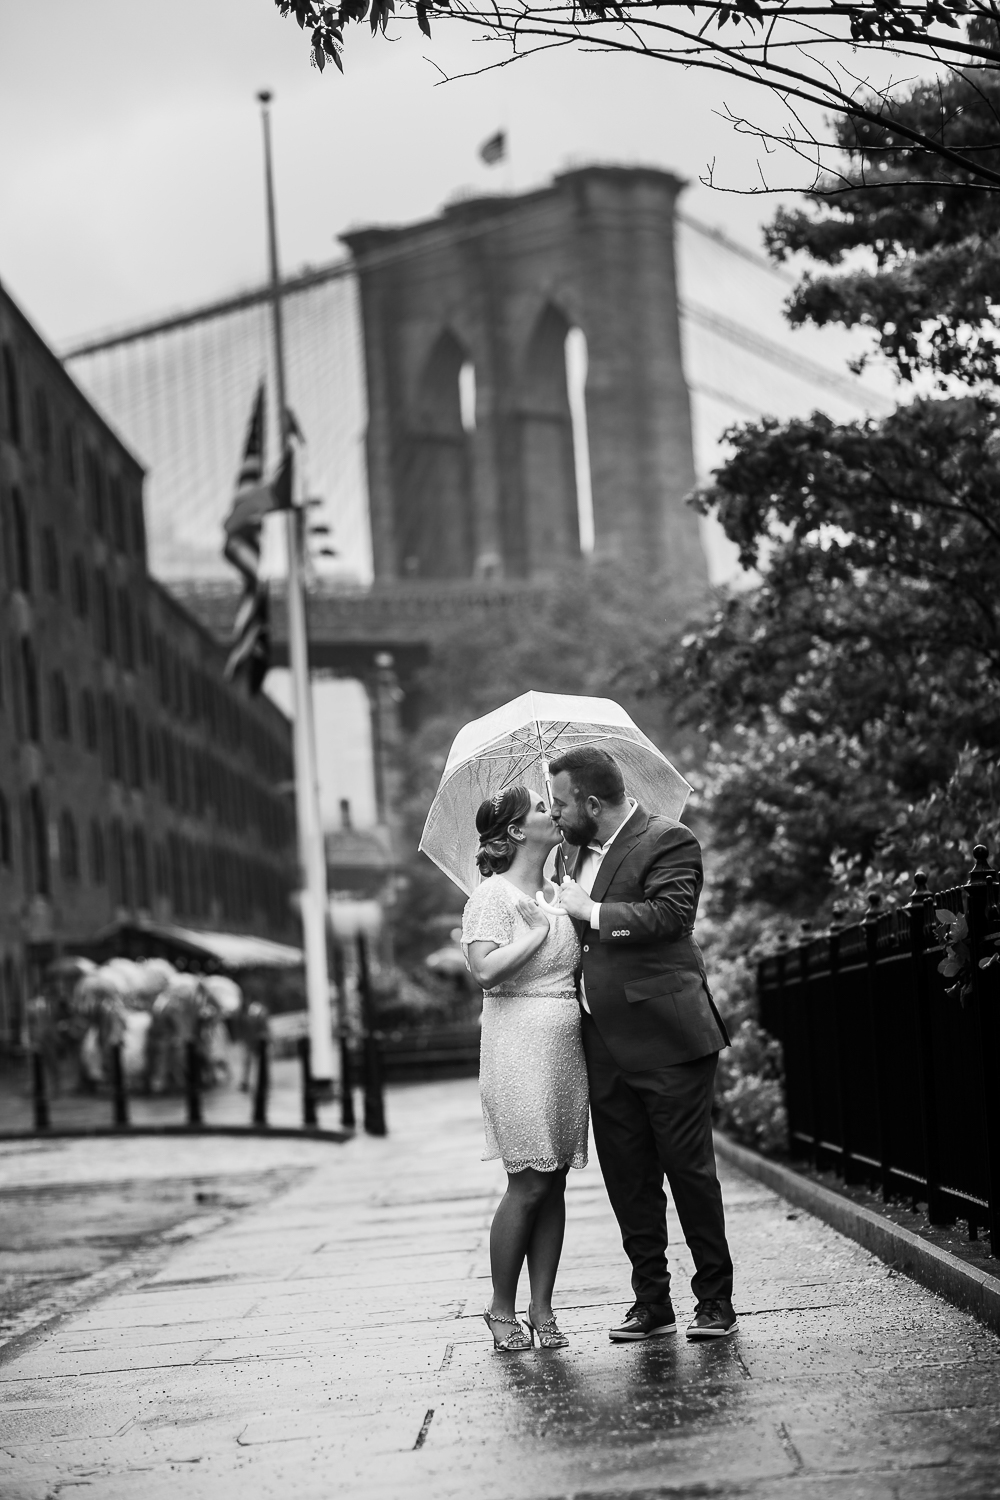 Black and white wedding photos in front of the Brooklyn Bridge. New York Bride in a short wedding dress and groom in a blue suit with clear plastic umbrellas kiss in the rain. | Intimate Wedding at the Malthouse in Manhattan, New York City.